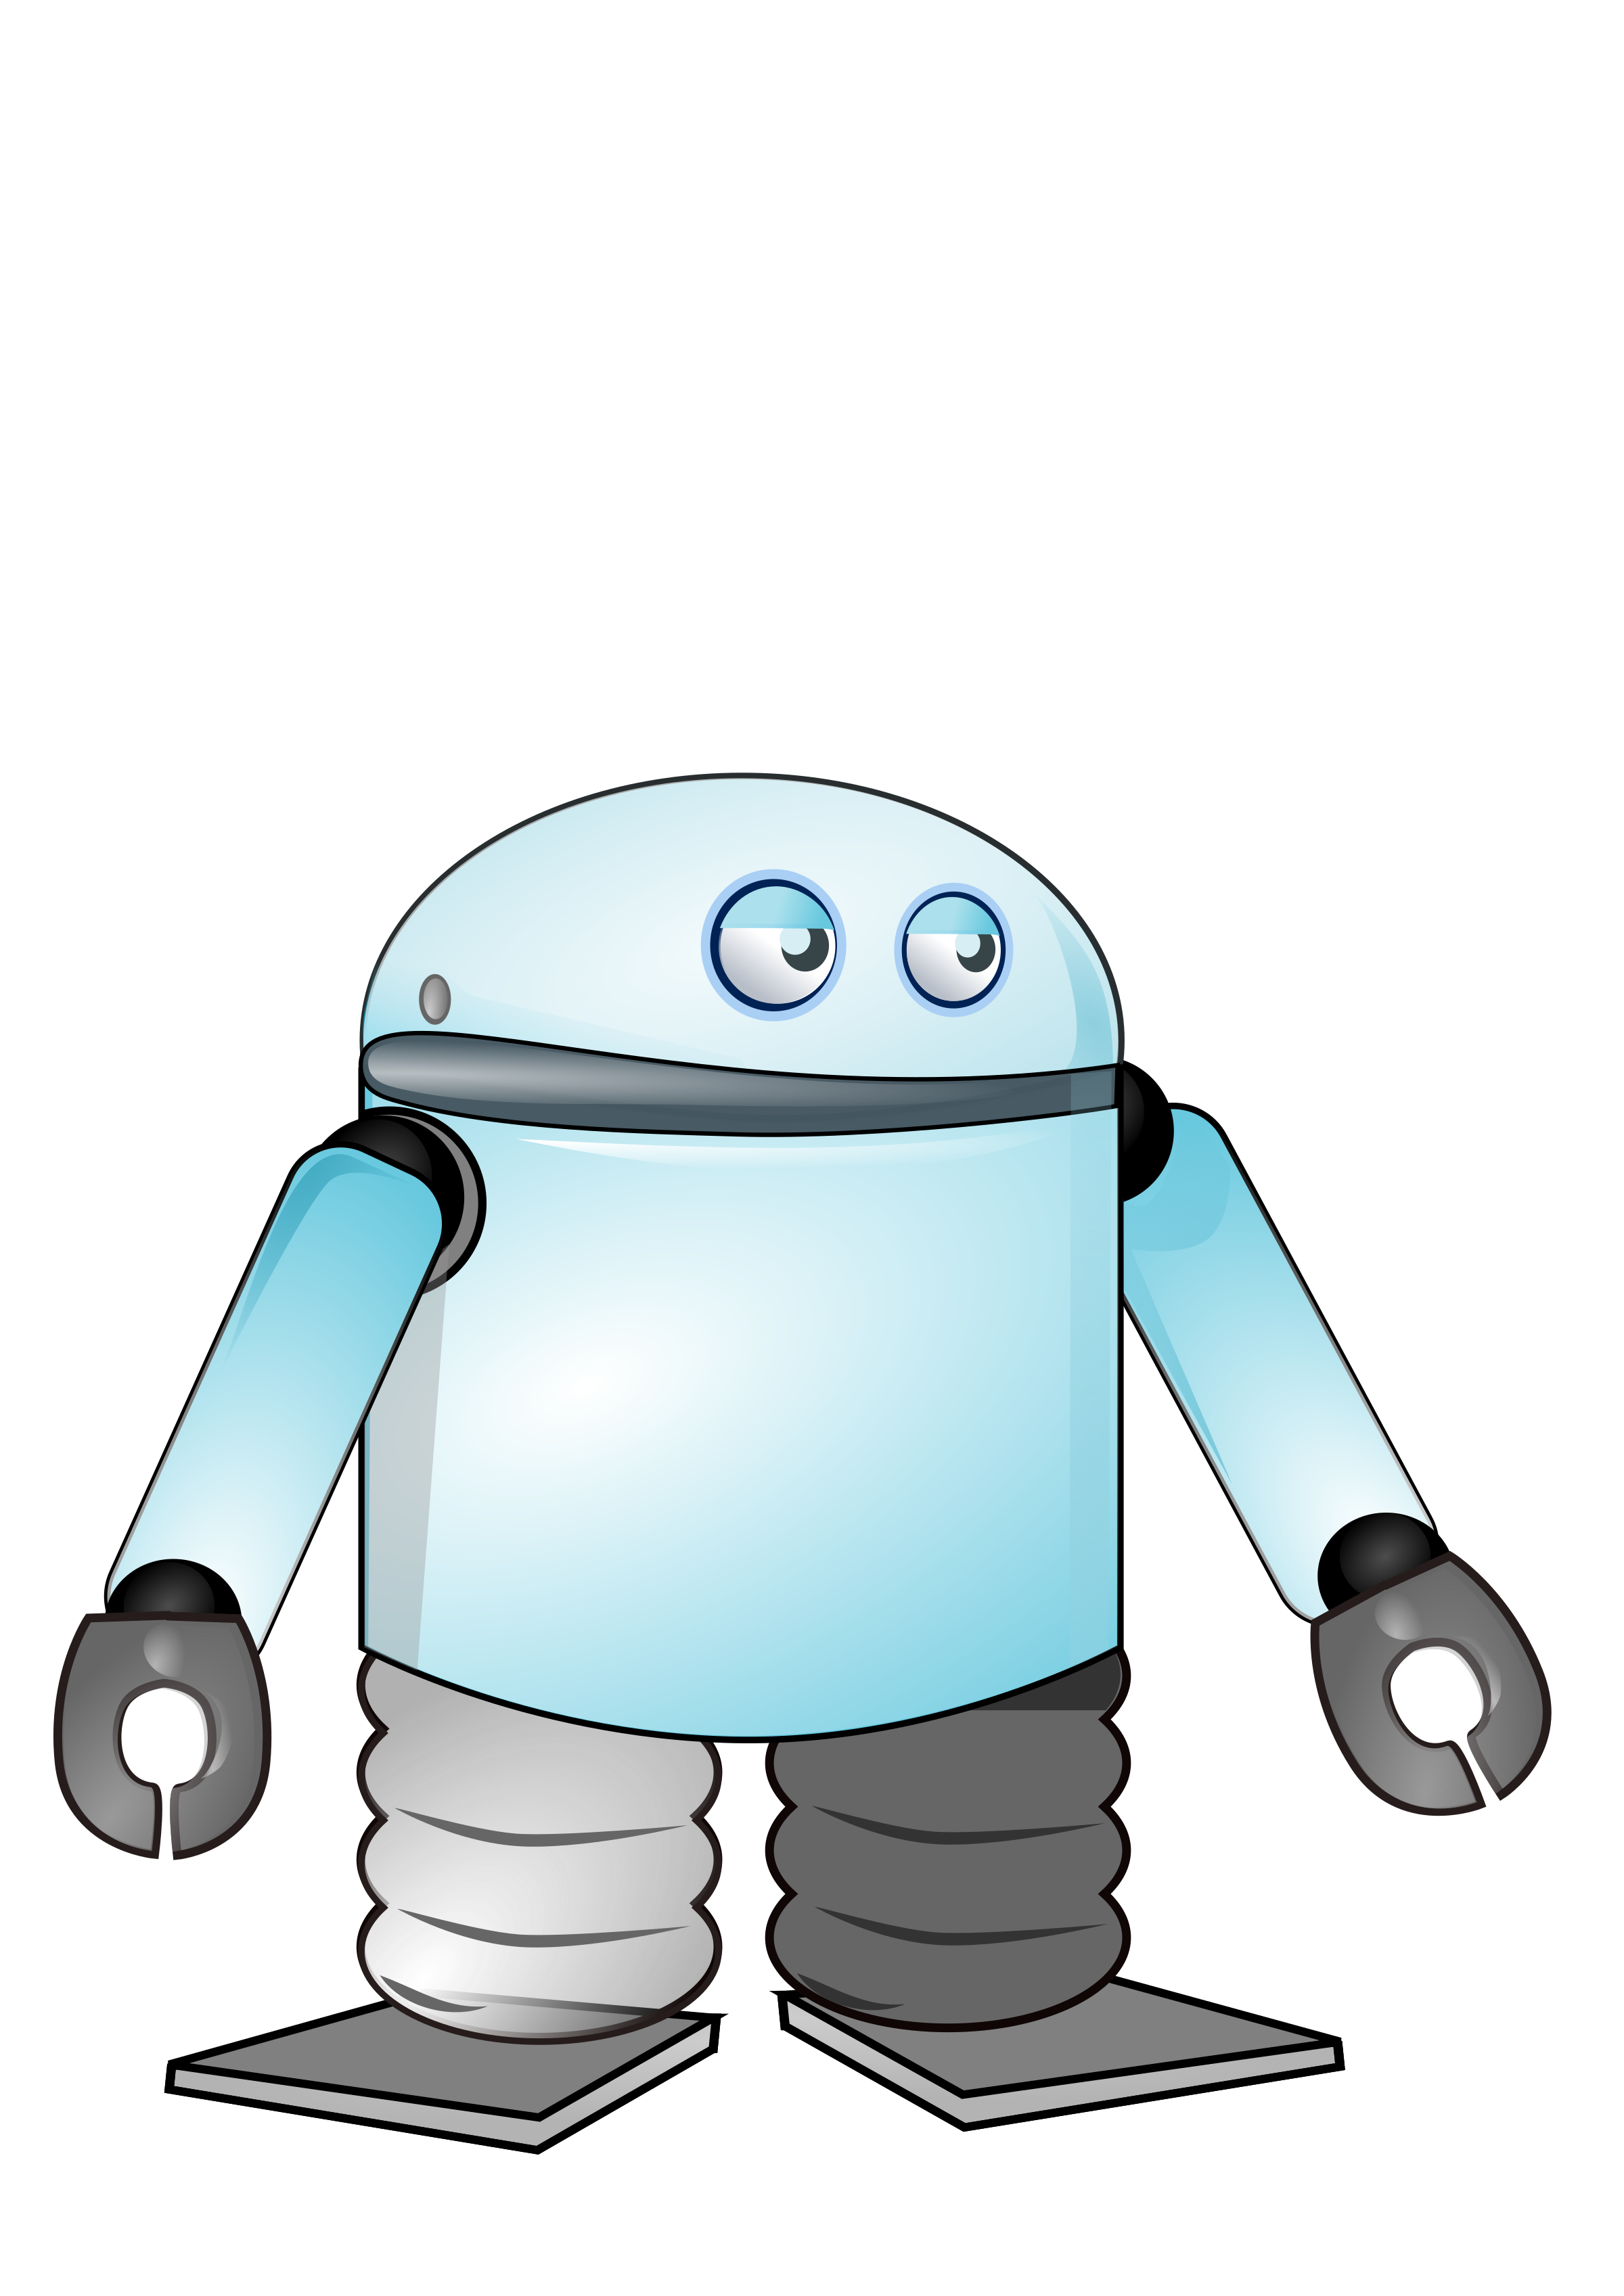 15 Cartoon Robot Png For Free Download On Ya Webdesign